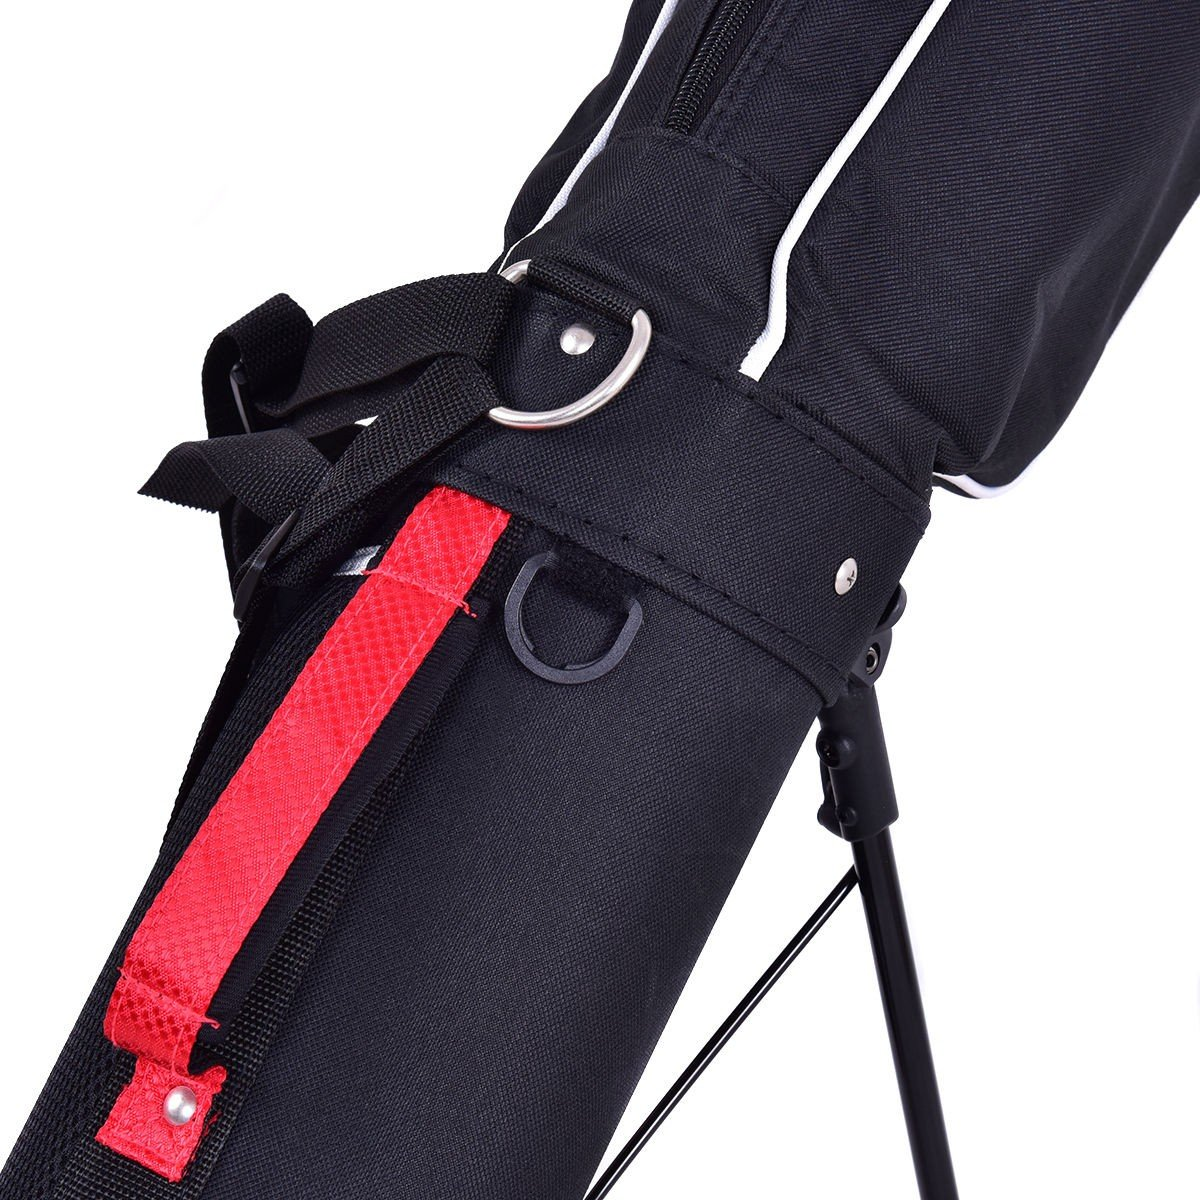 5'' Sunday Golf Bag Stand 7 Clubs Carry Pockets - By Choice Products by By Choice Products (Image #6)